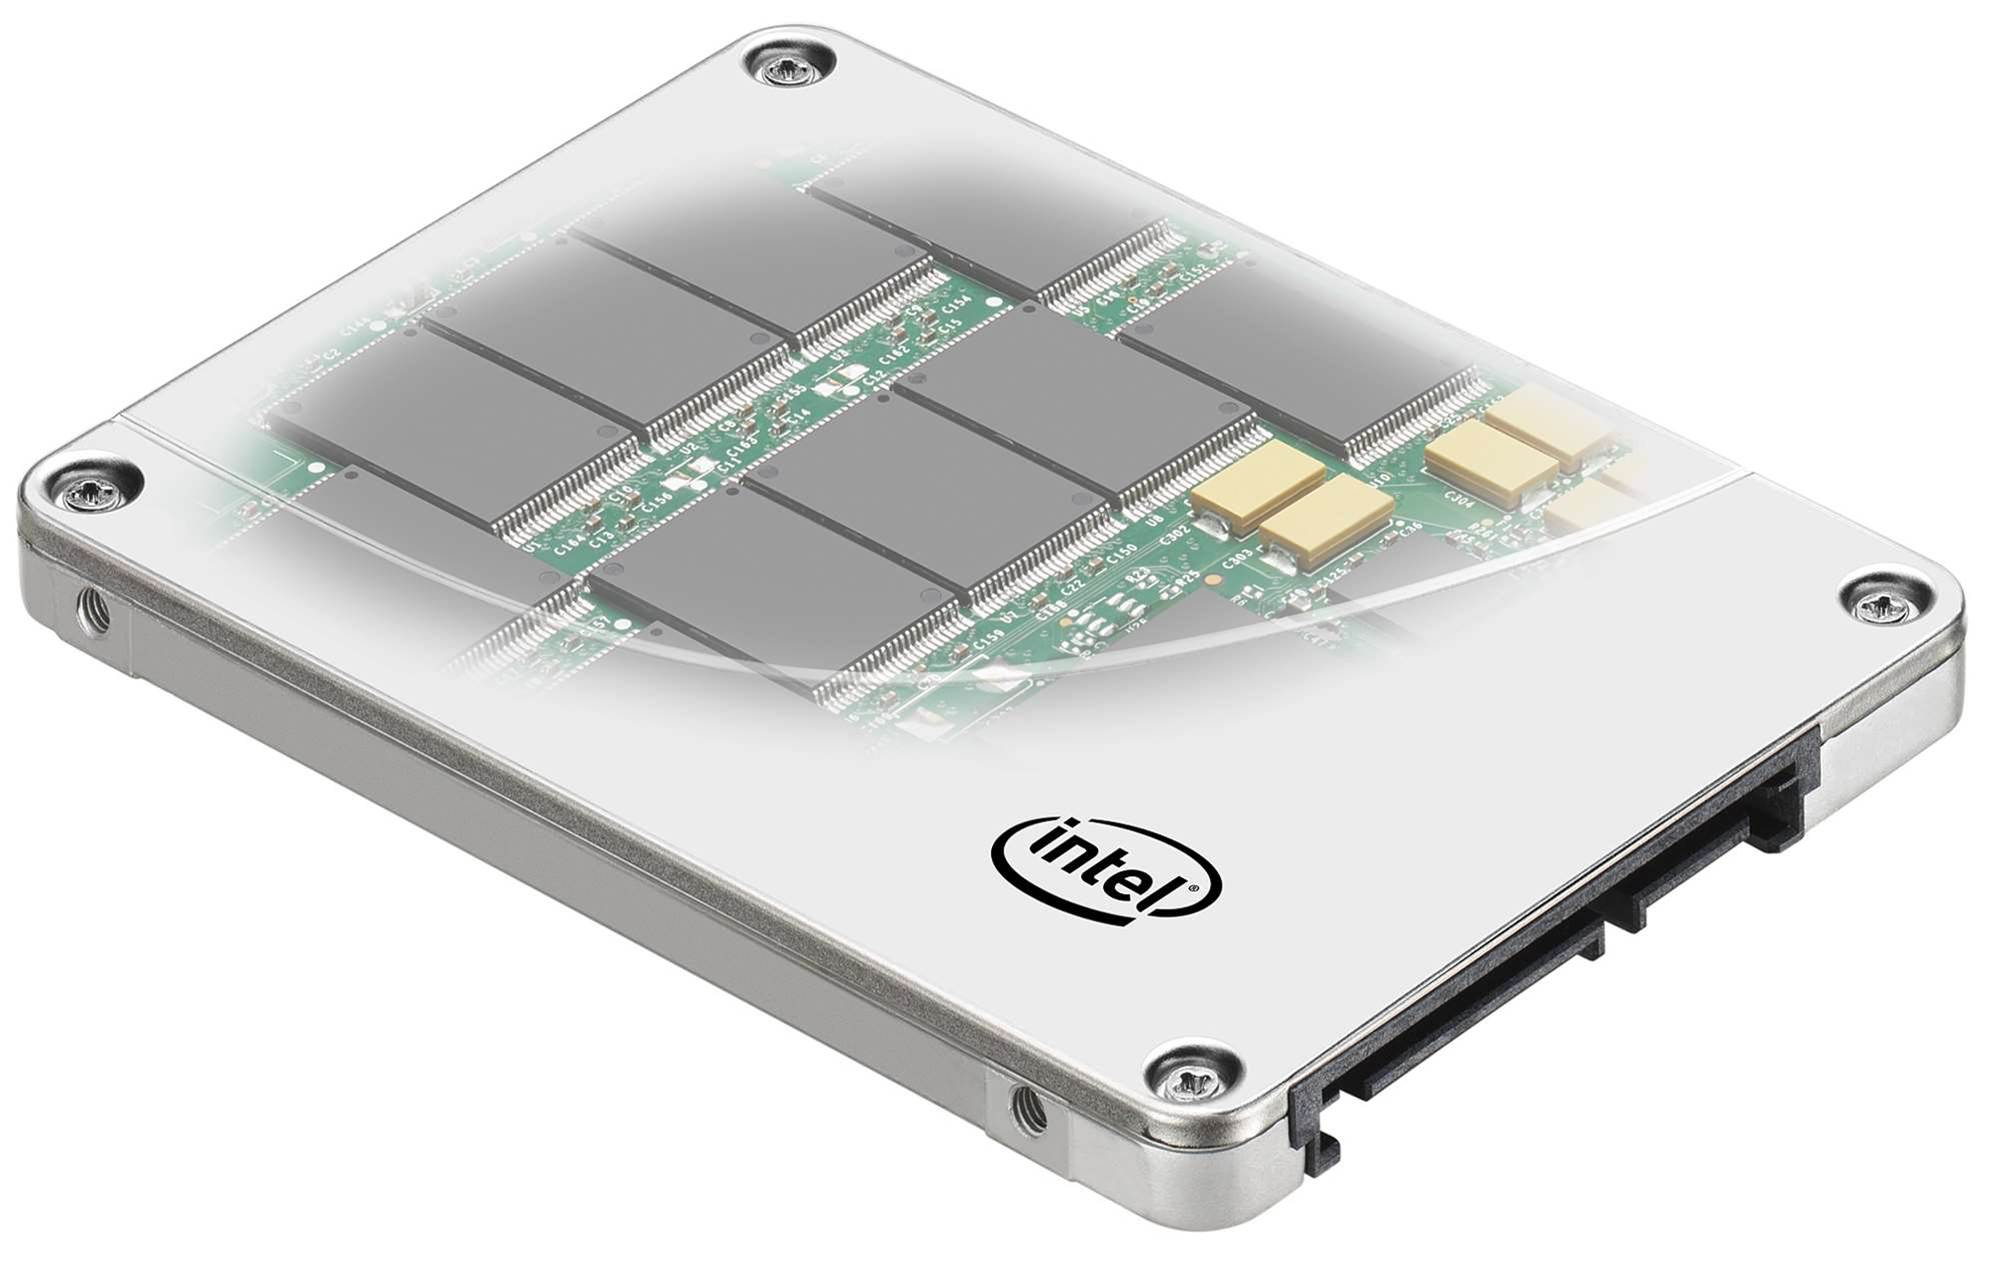 Intel finally launches its third generation Solid State Drives